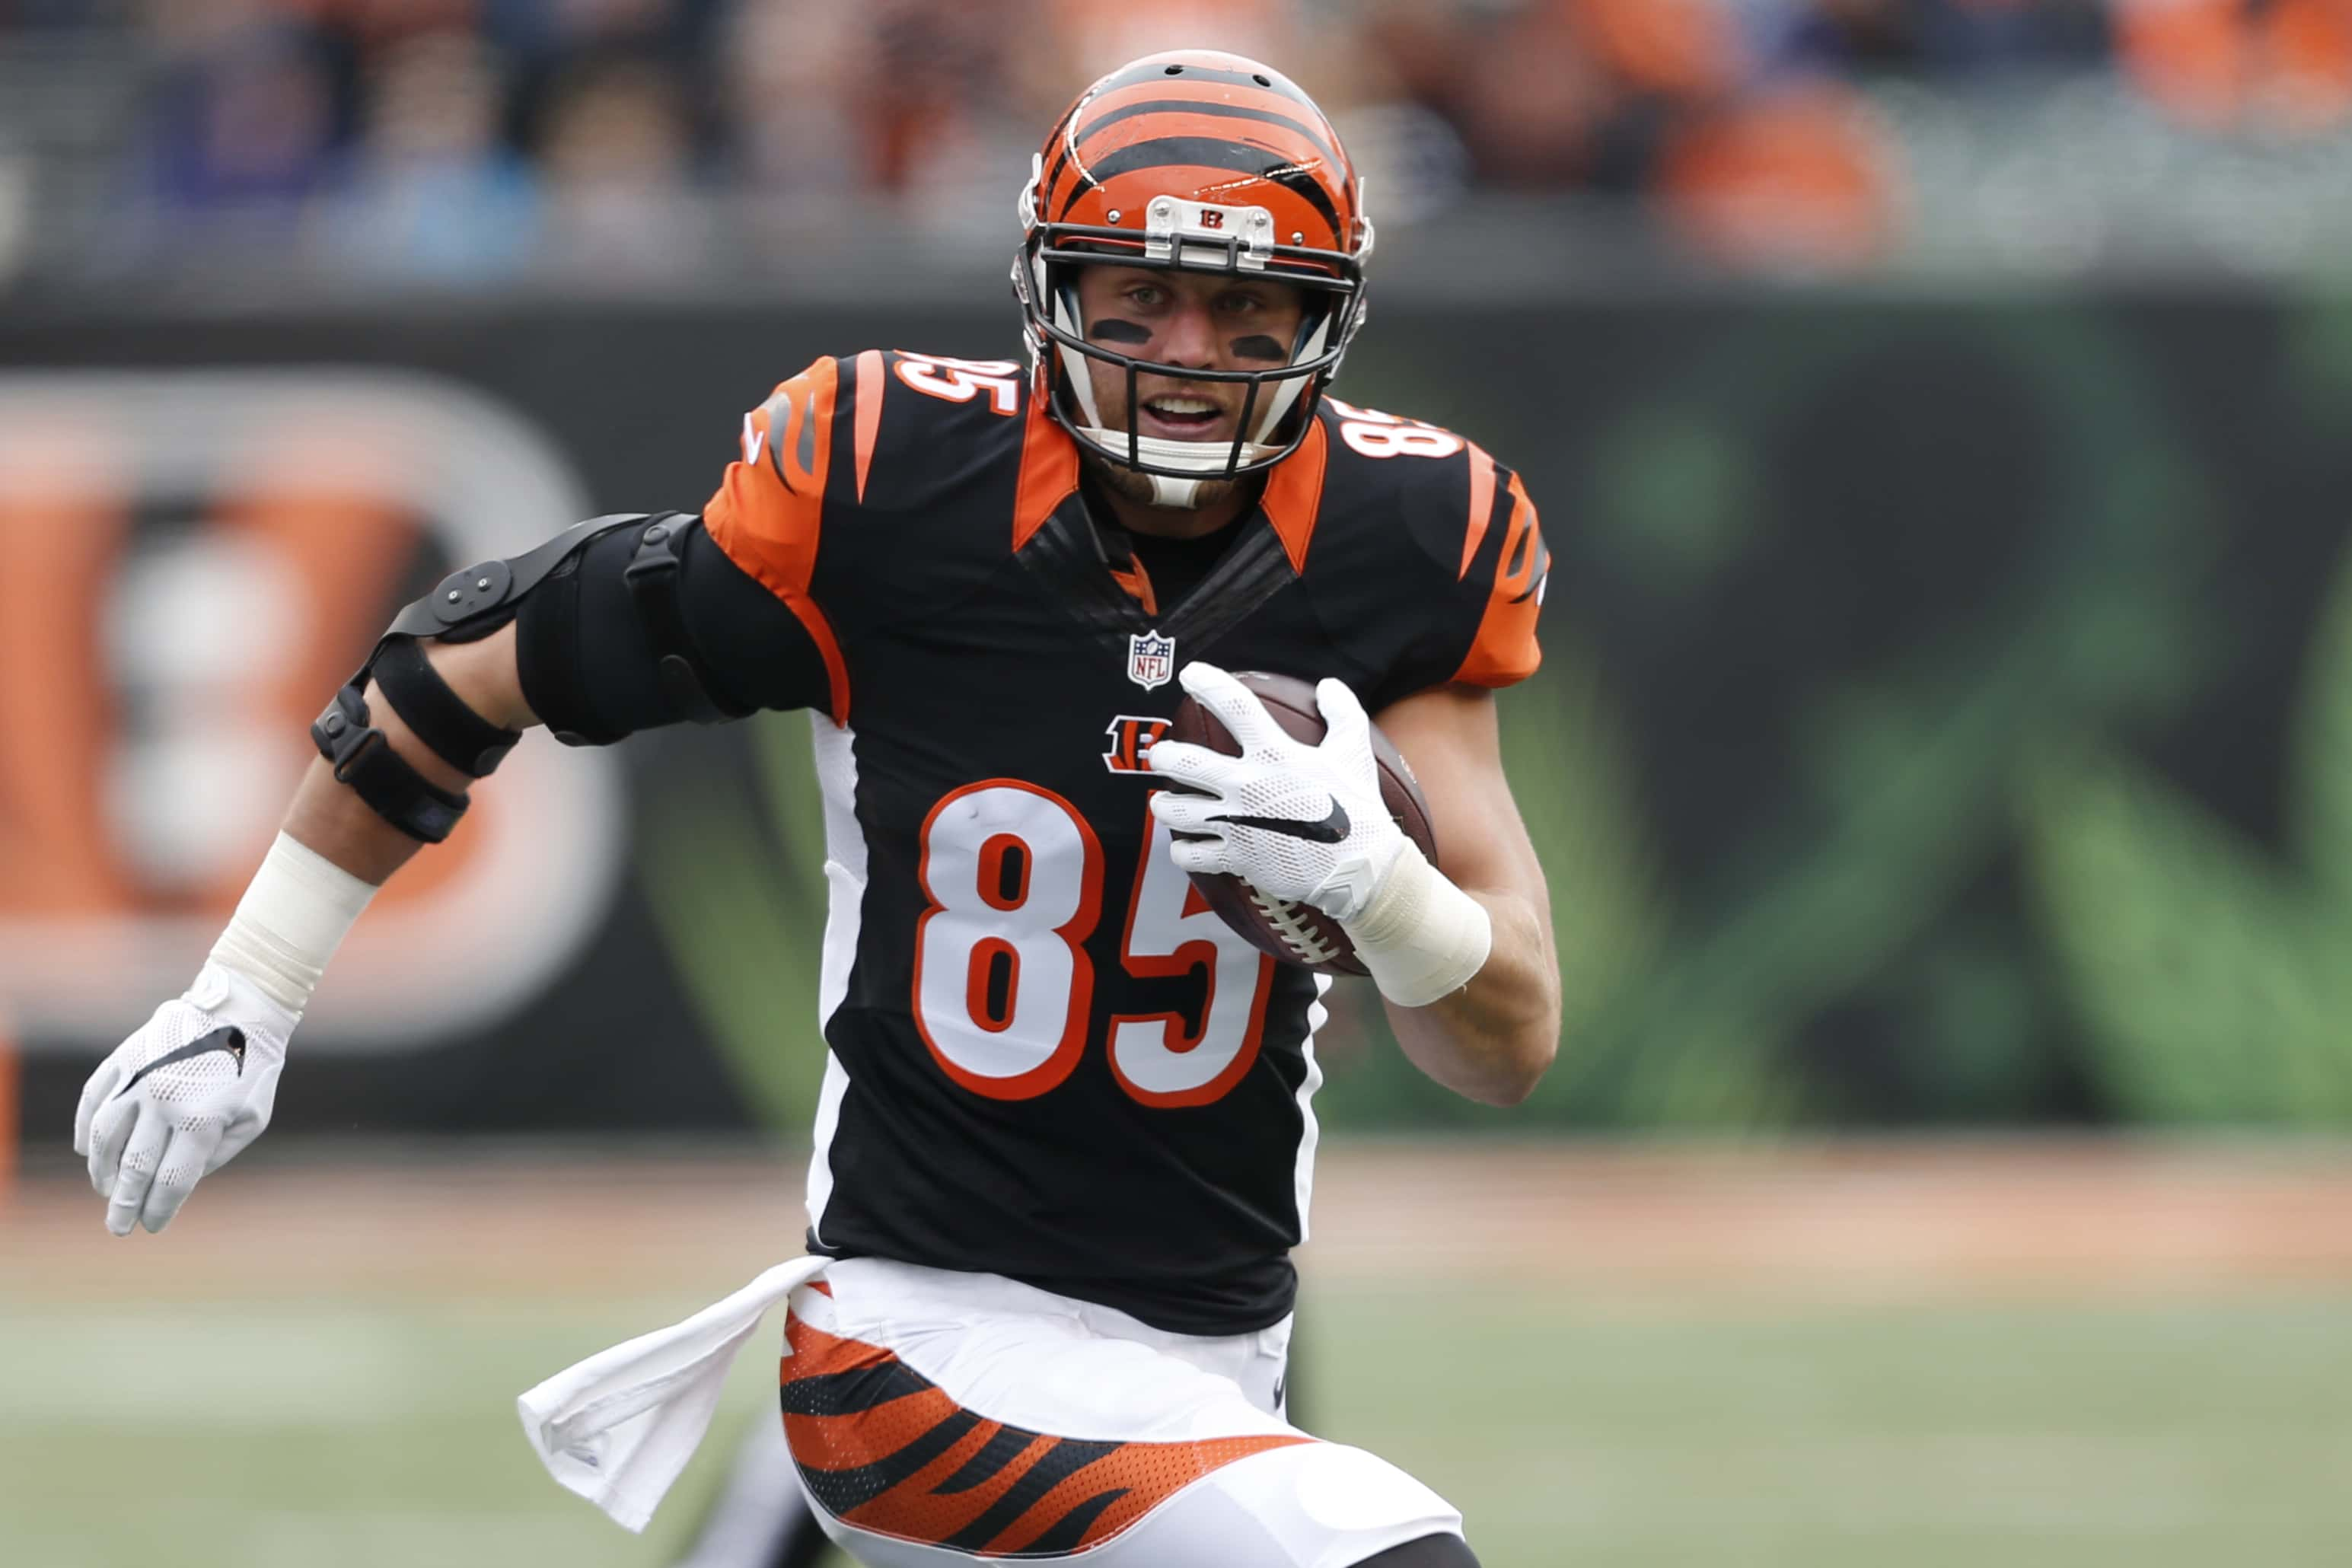 FILE - In this Nov. 29, 2015, file photo, Cincinnati Bengals tight end Tyler Eifert (85) runs the ball in the first half of an NFL football game against the St. Louis Rams in Cincinnati. Eifert had surgery on his left ankle this summer and is expected to miss most of training camp and perhaps a few games early in the season. He had one of the best seasons in club history, catching 52 passes for 615 yards and 13 touchdowns, a club record for a tight end. (AP Photo/Frank Victores, File)